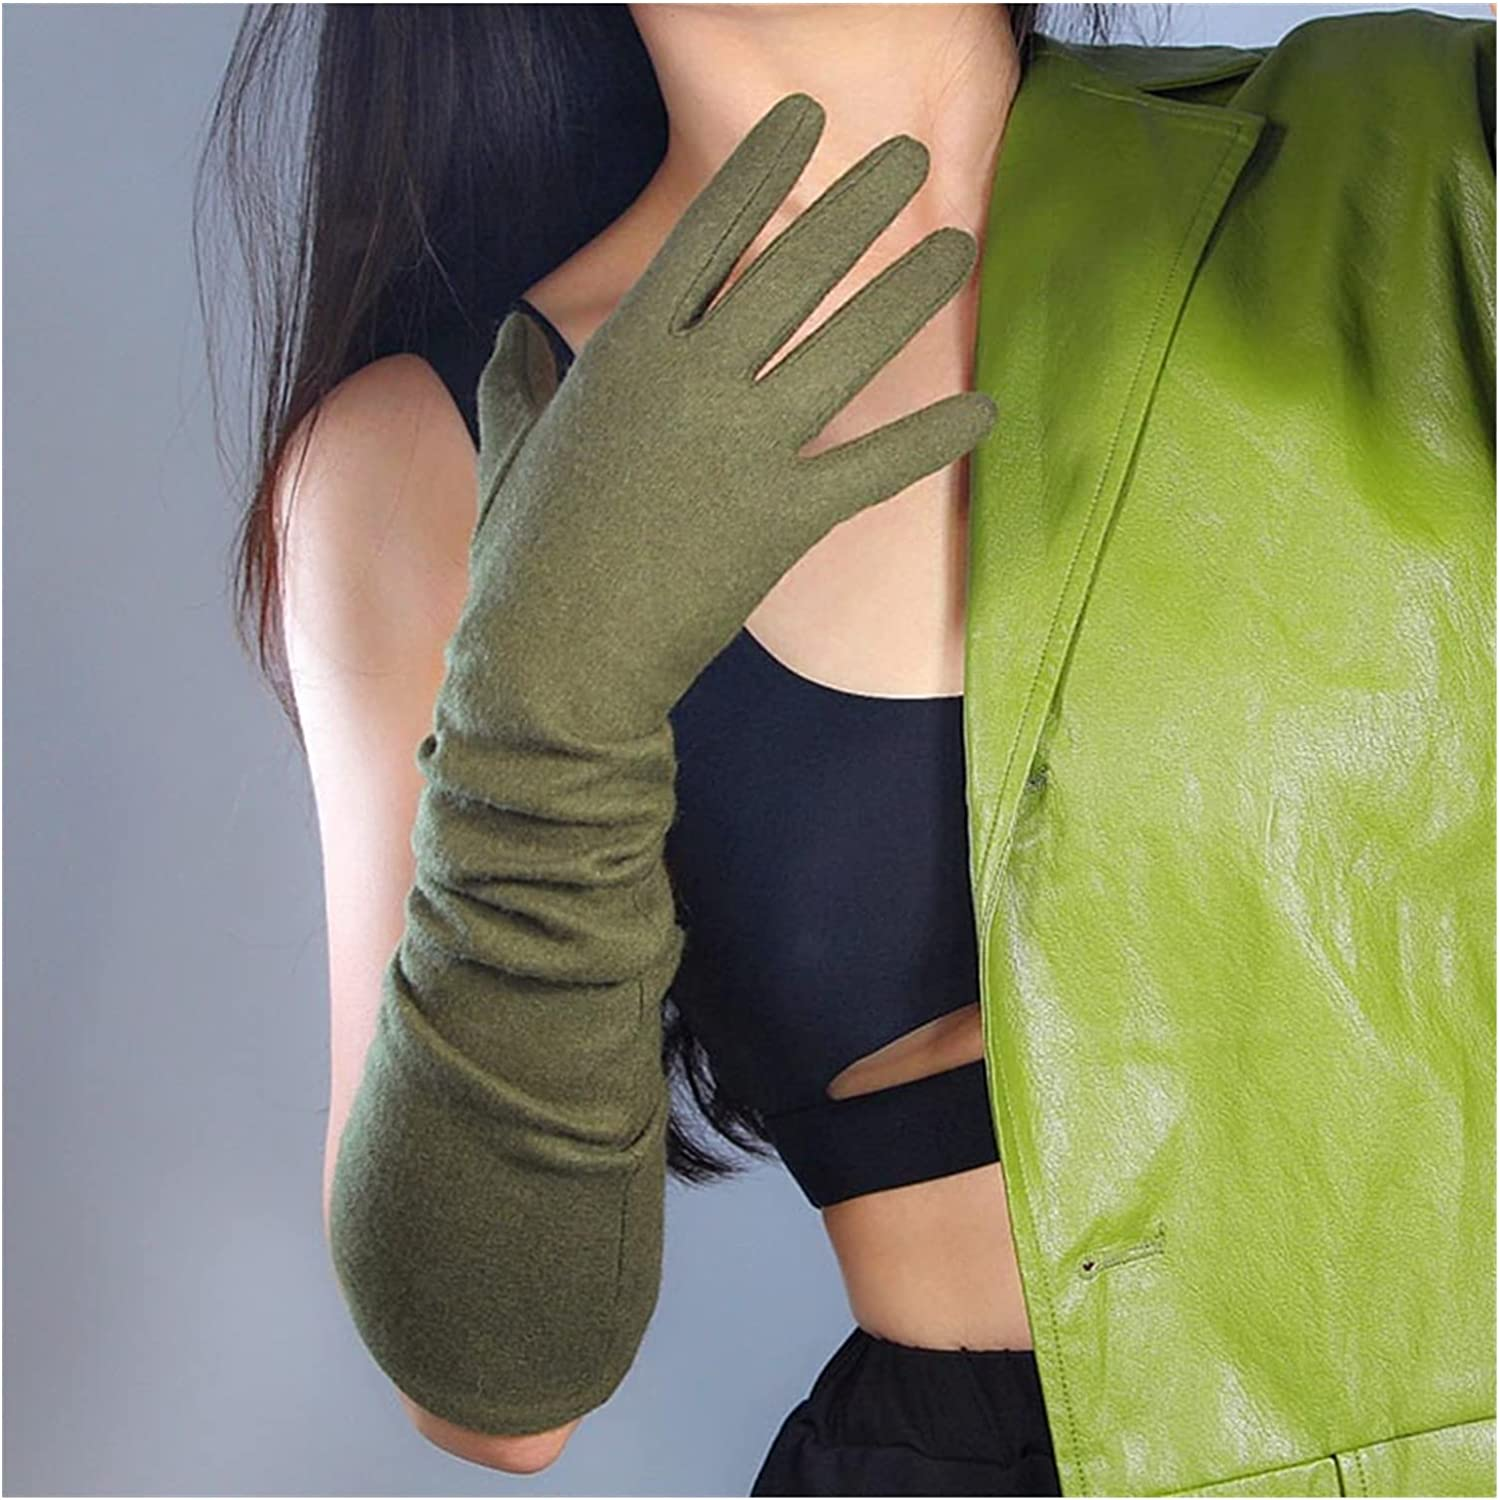 CHHNGPON Bridal Gloves Xmas Gifts Winter Warm Gloves Womens Wool Long Gloves Mittens Touchscreen Knit Gloves Arthritis Arm Warmers Gray Black (Color : Green)